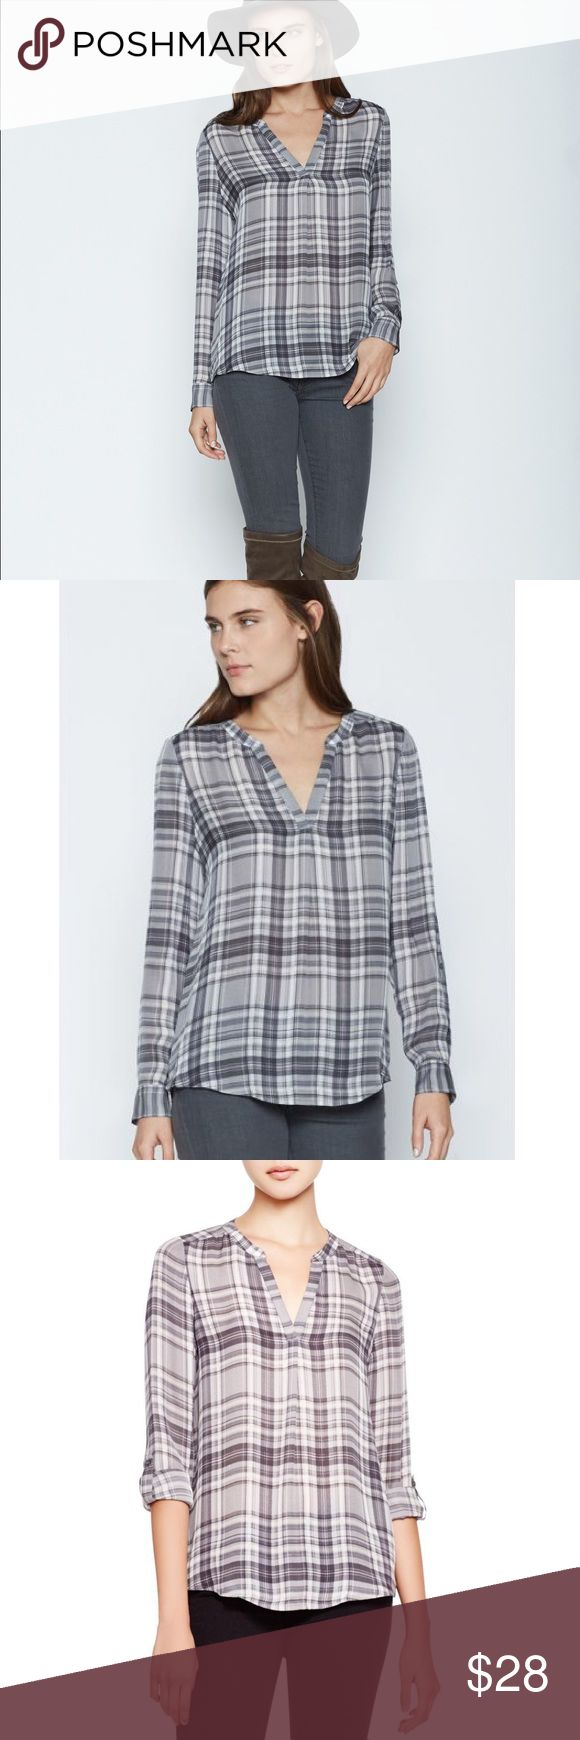 Joie 'Coralle' Plaid Woven Silk Top EUC The soft neutral palette of this silk popover blouse makes it a versatile piece that will layer easily or shine on its own. Slips on over head. V-neck. Roll sleeves with button tabs. Back yoke with inverted pleat. Curved hem. 100% silk. Dry clean. By Joie; imported. No trades, offers welcome👍☺️ Joie Tops